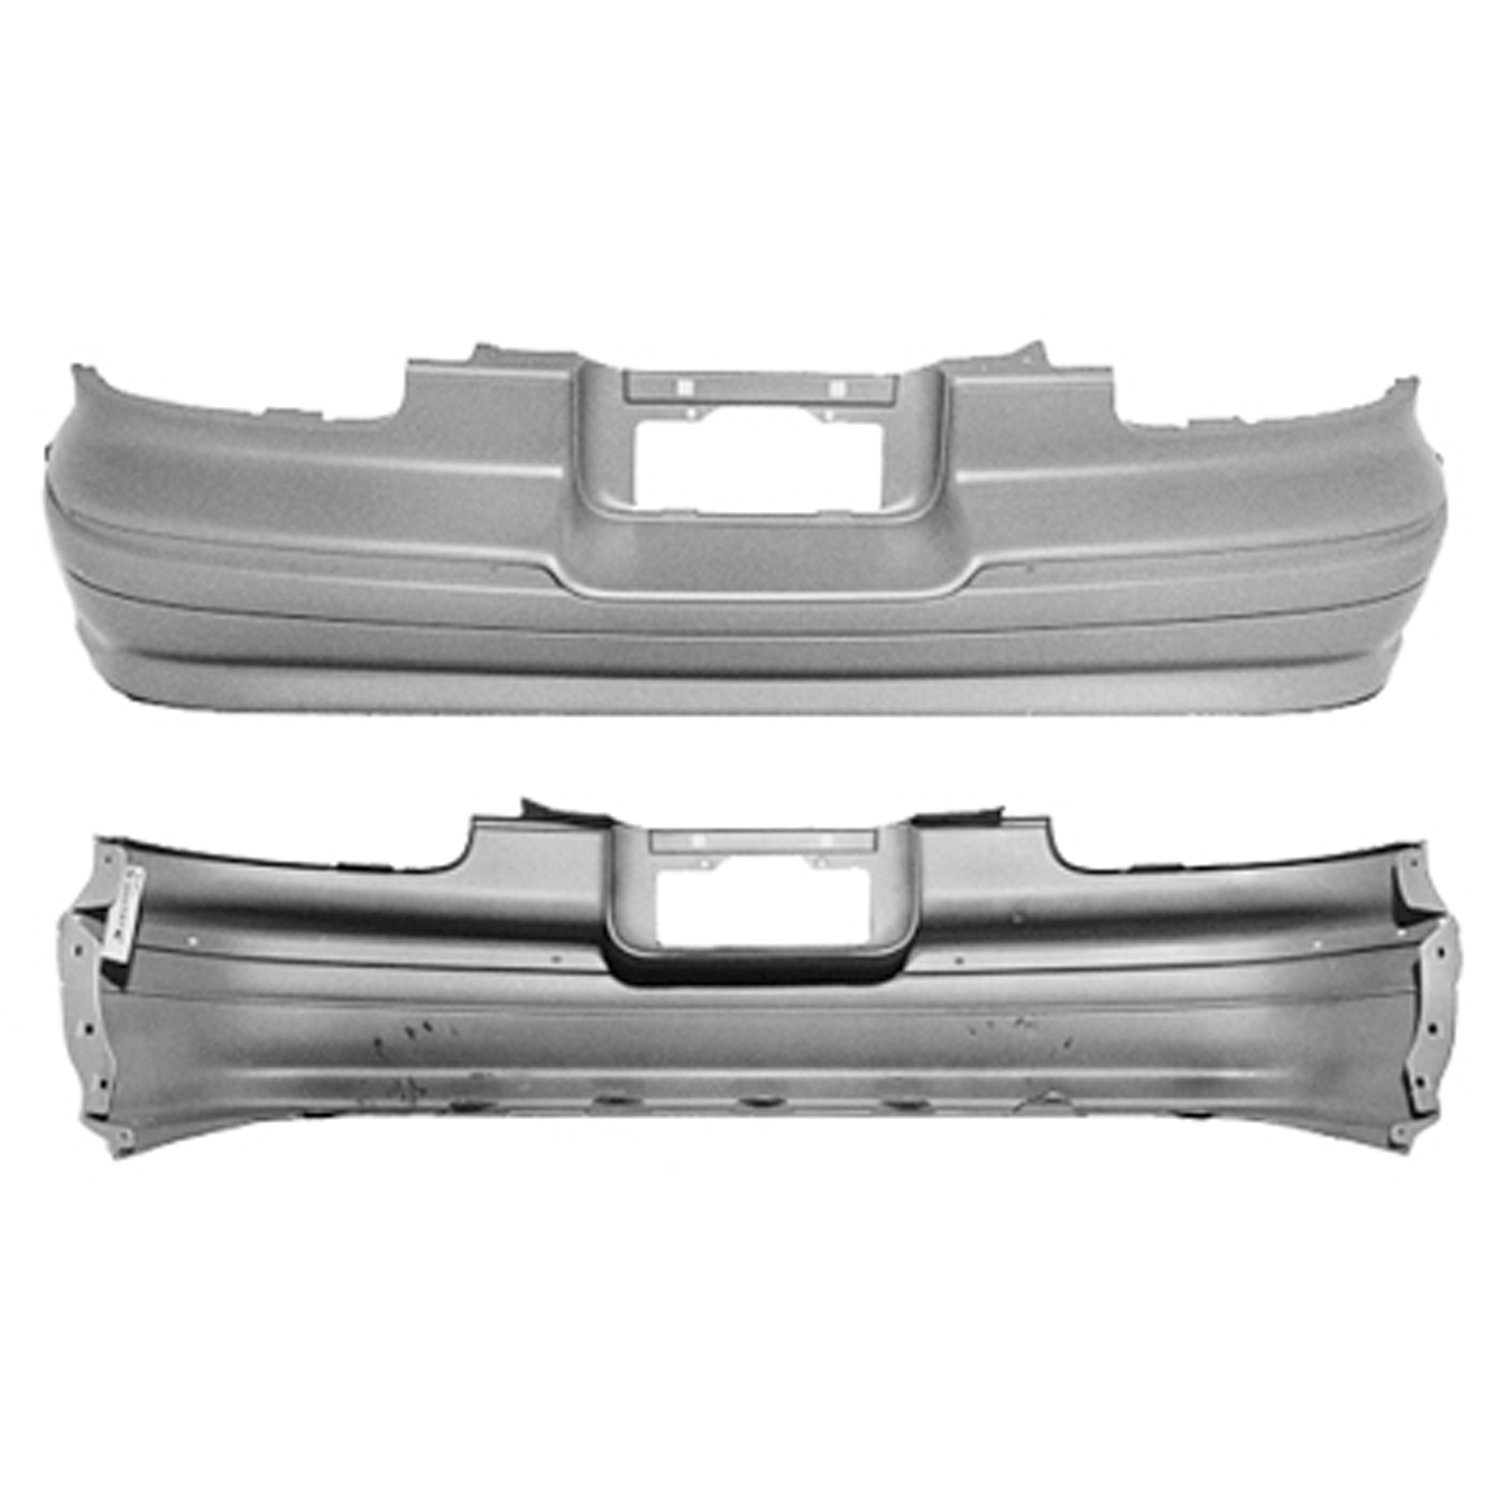 Cheap Gm Caprice Find Deals On Line At Alibabacom 1966 Chevy Parts Get Quotations Crash Plus Gm1100150 Primed Rear Bumper Cover For 91 96 Chevrolet